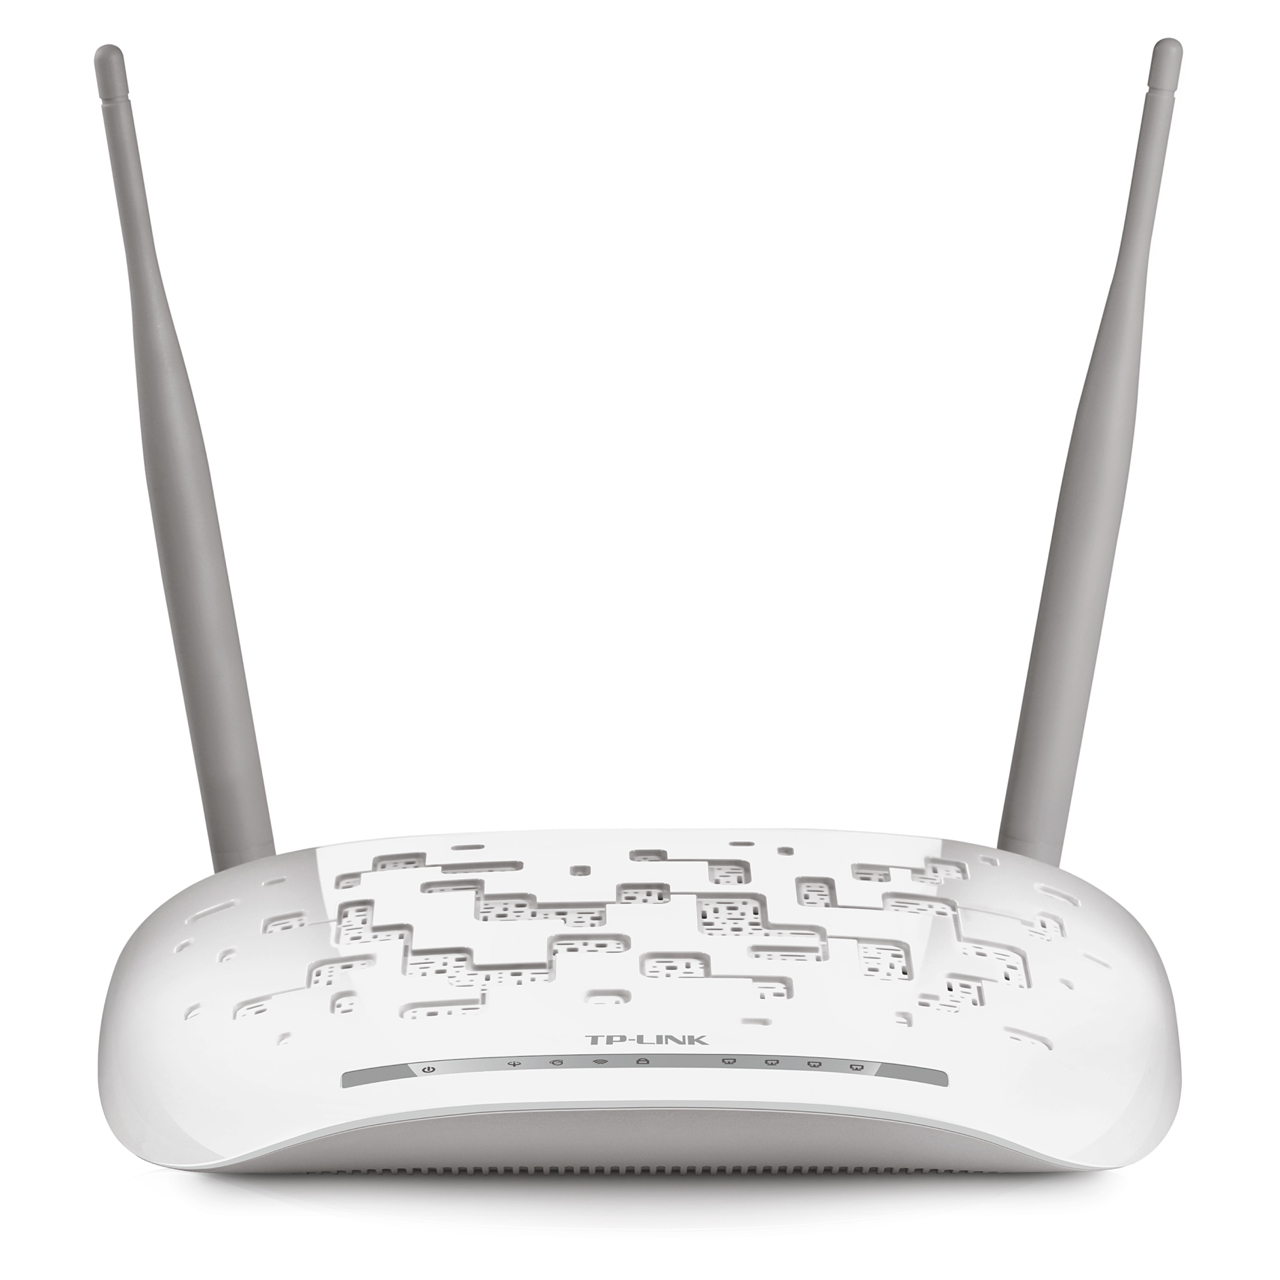 300Mbps Wireless N ADSL2+Modem Router